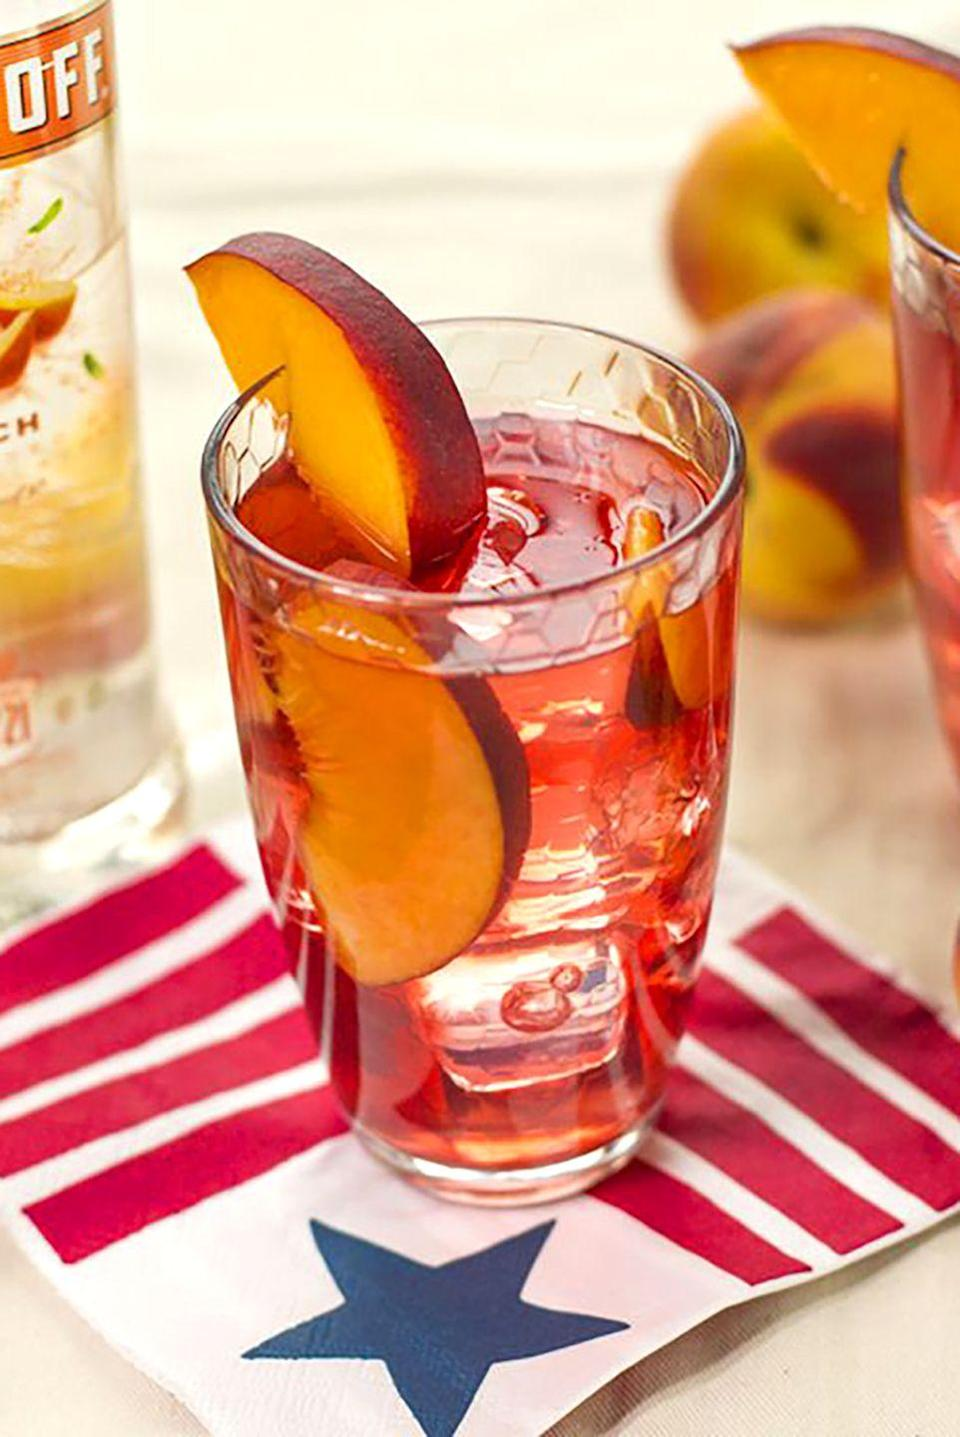 "<p><strong>Ingredients:</strong><br></p><p>1.5 cups Smirnoff® Peach</p><p>3 cups White Cranberry Juice</p><p>1/4 cup Lemon Juice</p><p>Fresh Peaches</p><p><strong>Directions:</strong></p><p>Mix in a pitcher. Enjoy.</p><p><em>Courtesy of <a href=""http://www.smirnoff.com/en-us/"" rel=""nofollow noopener"" target=""_blank"" data-ylk=""slk:Smirnoff Vodka"" class=""link rapid-noclick-resp"">Smirnoff Vodka</a></em></p>"